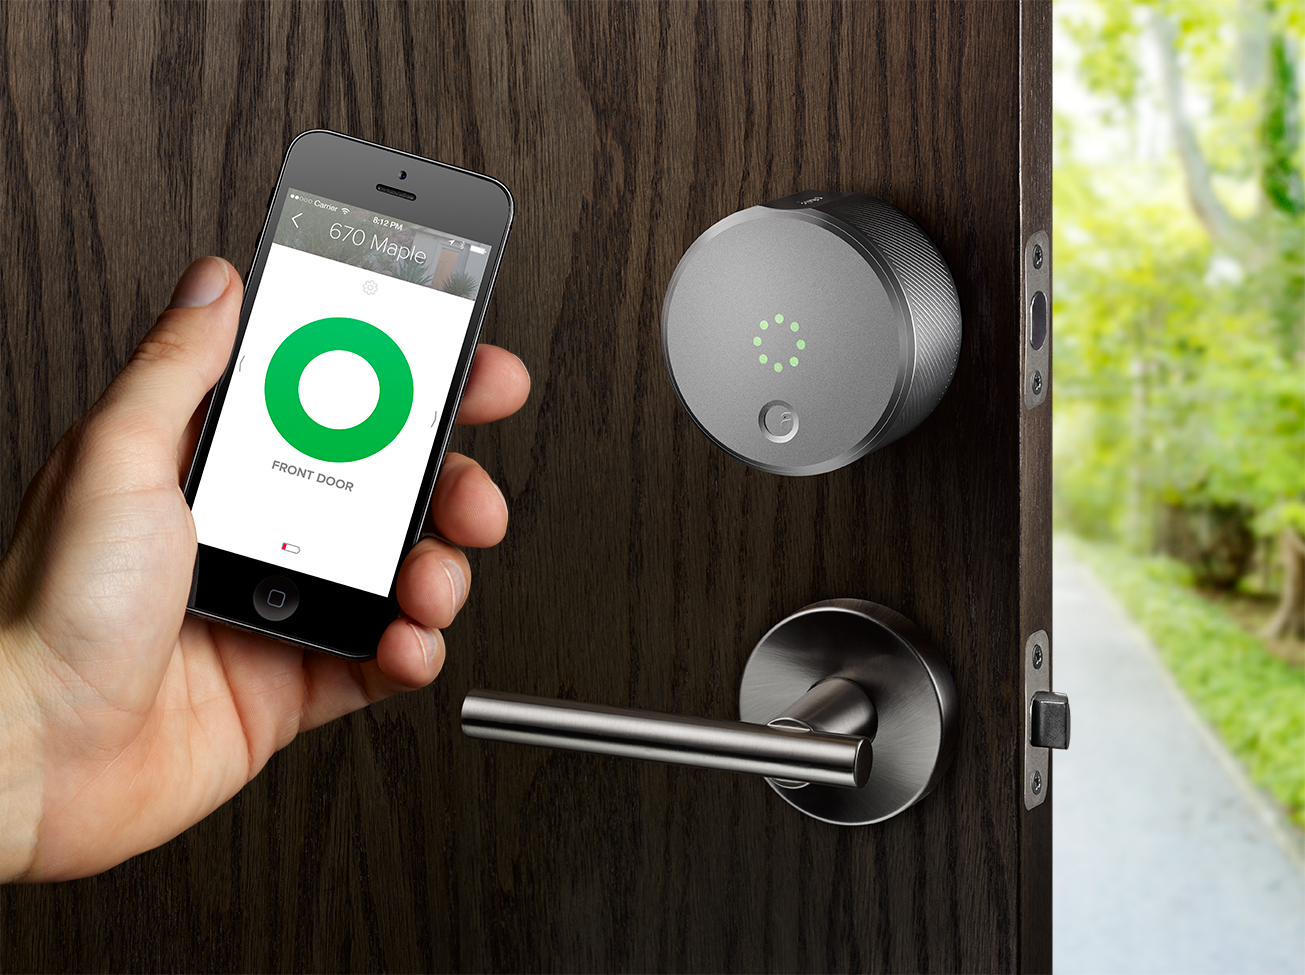 After more than a year since it was first announced the August Smart Lock is finally going on sale. The device will be shipping to pre-order customers and ... & Augustu0027s Smart Lock Goes On Sale Online And At Apple Retail Stores ...